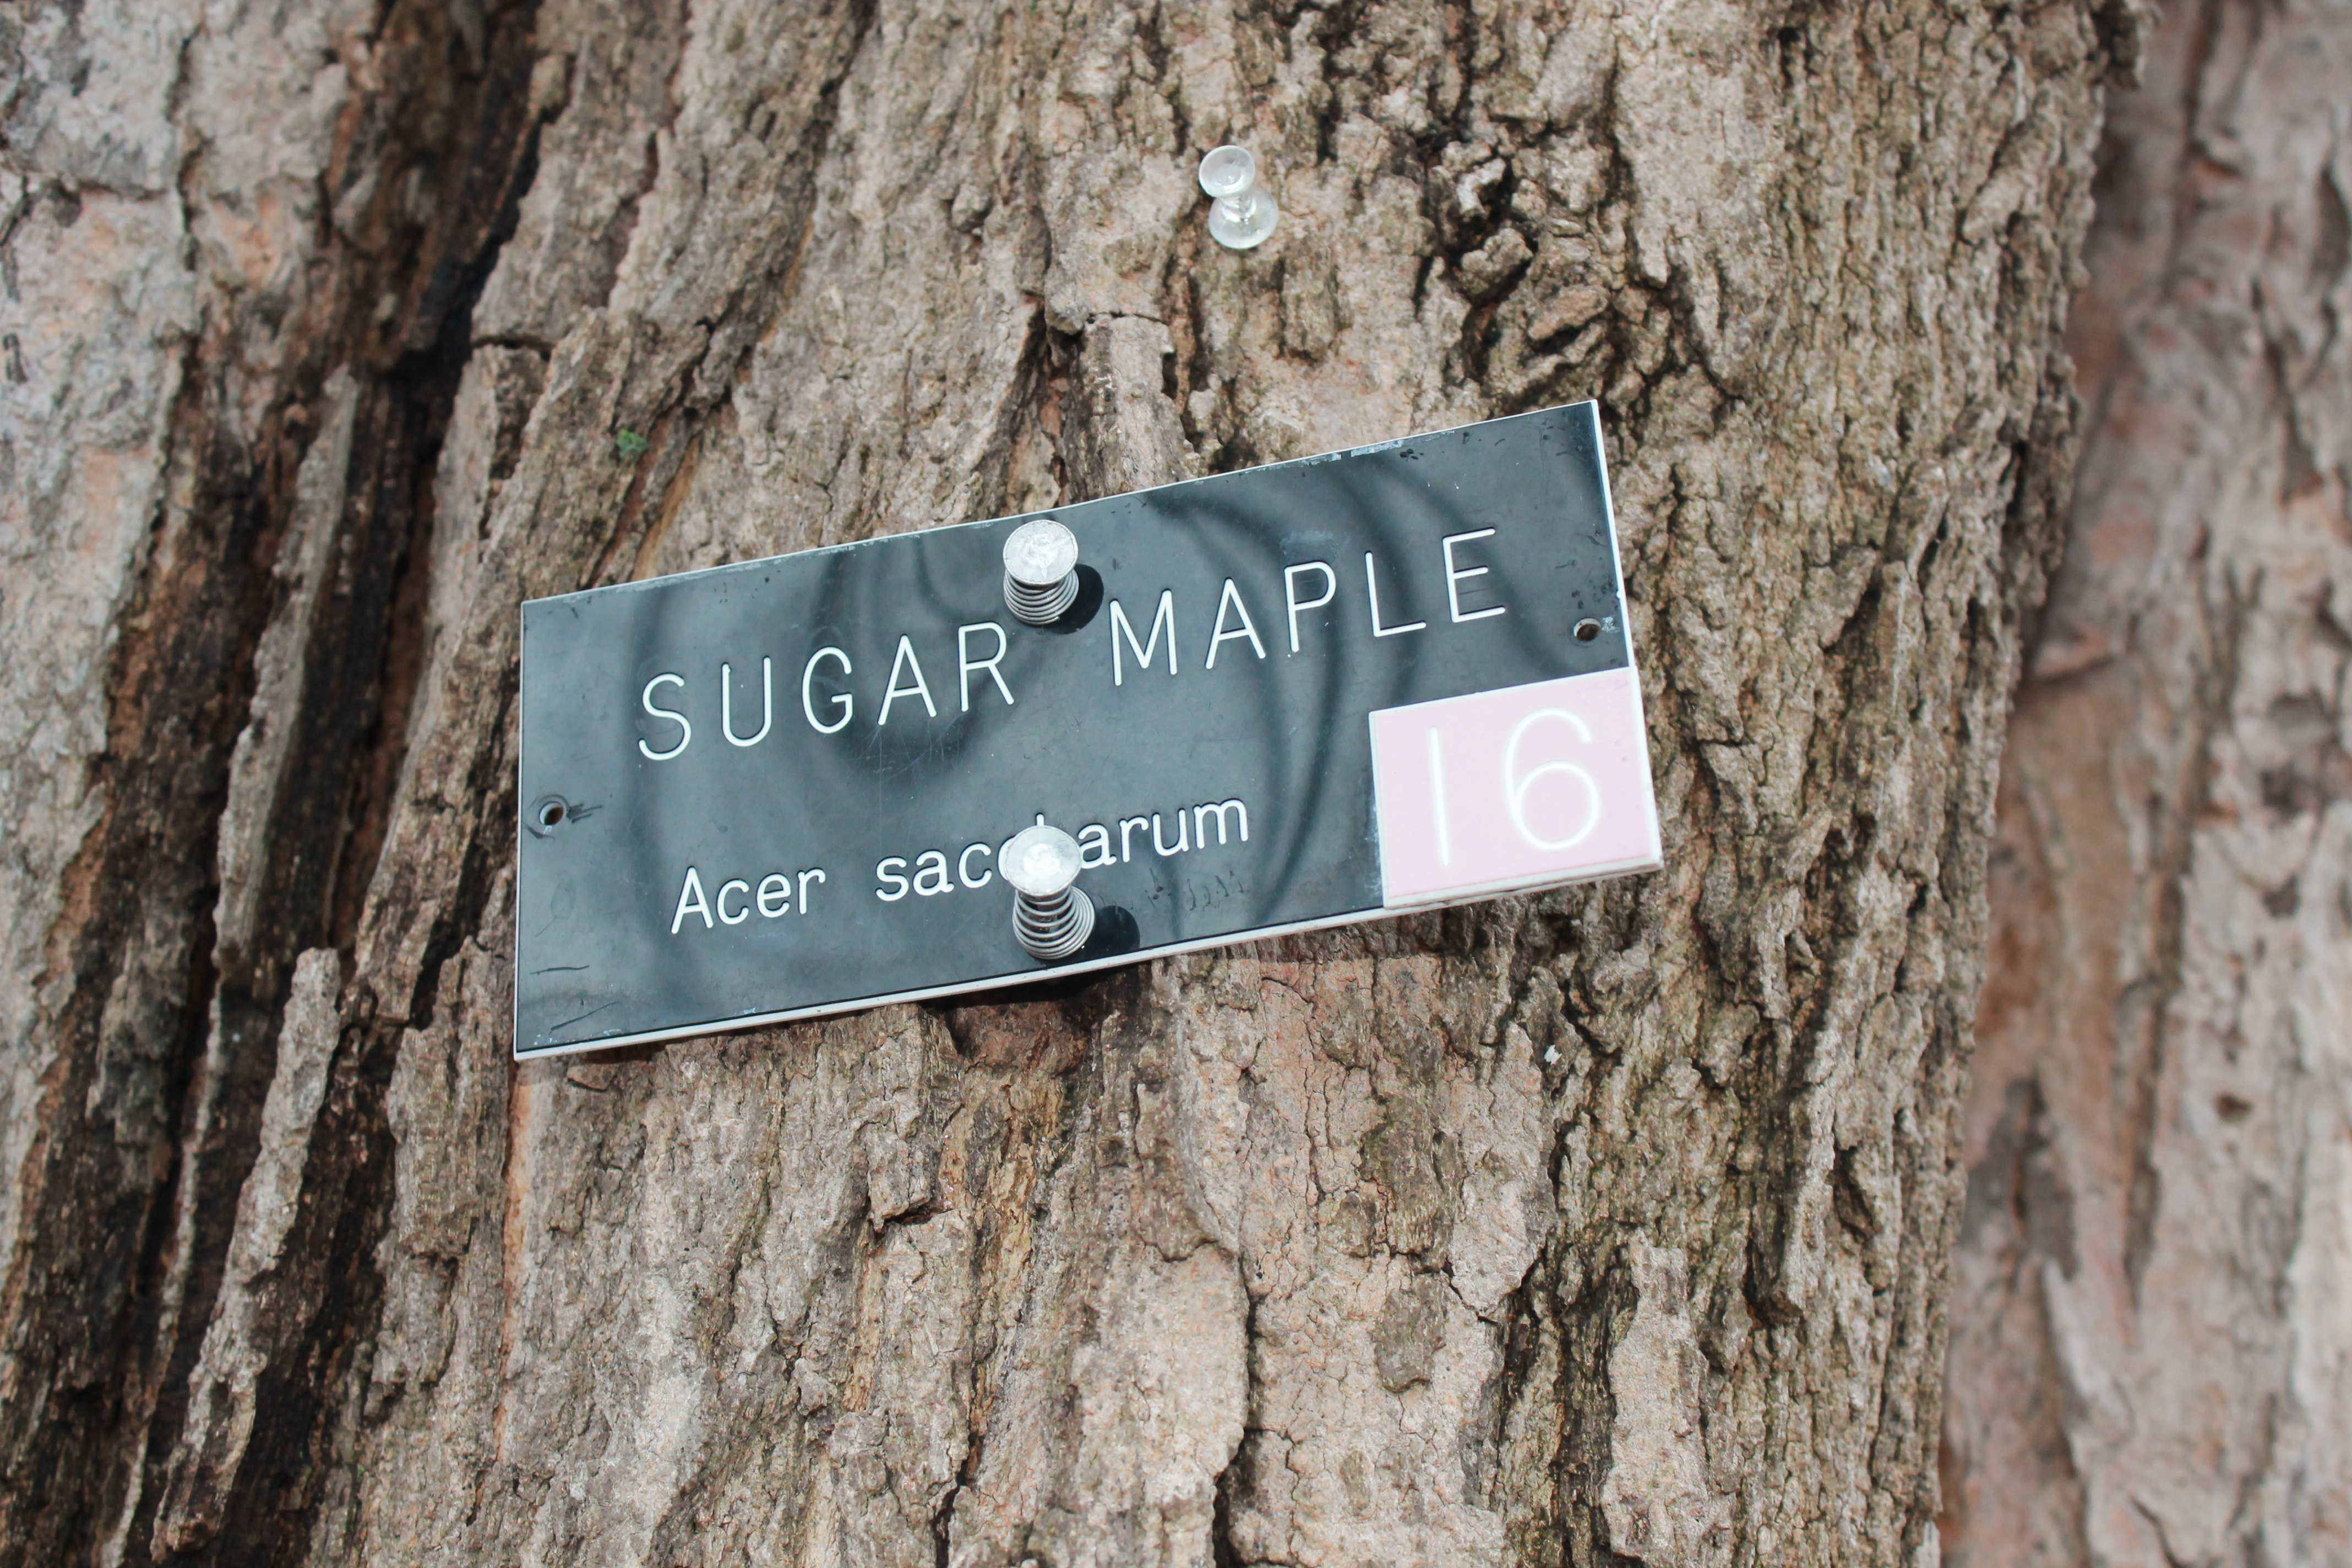 Sugar-maple-trees-in-new-jersey-are-used-to-make-maple-syrup